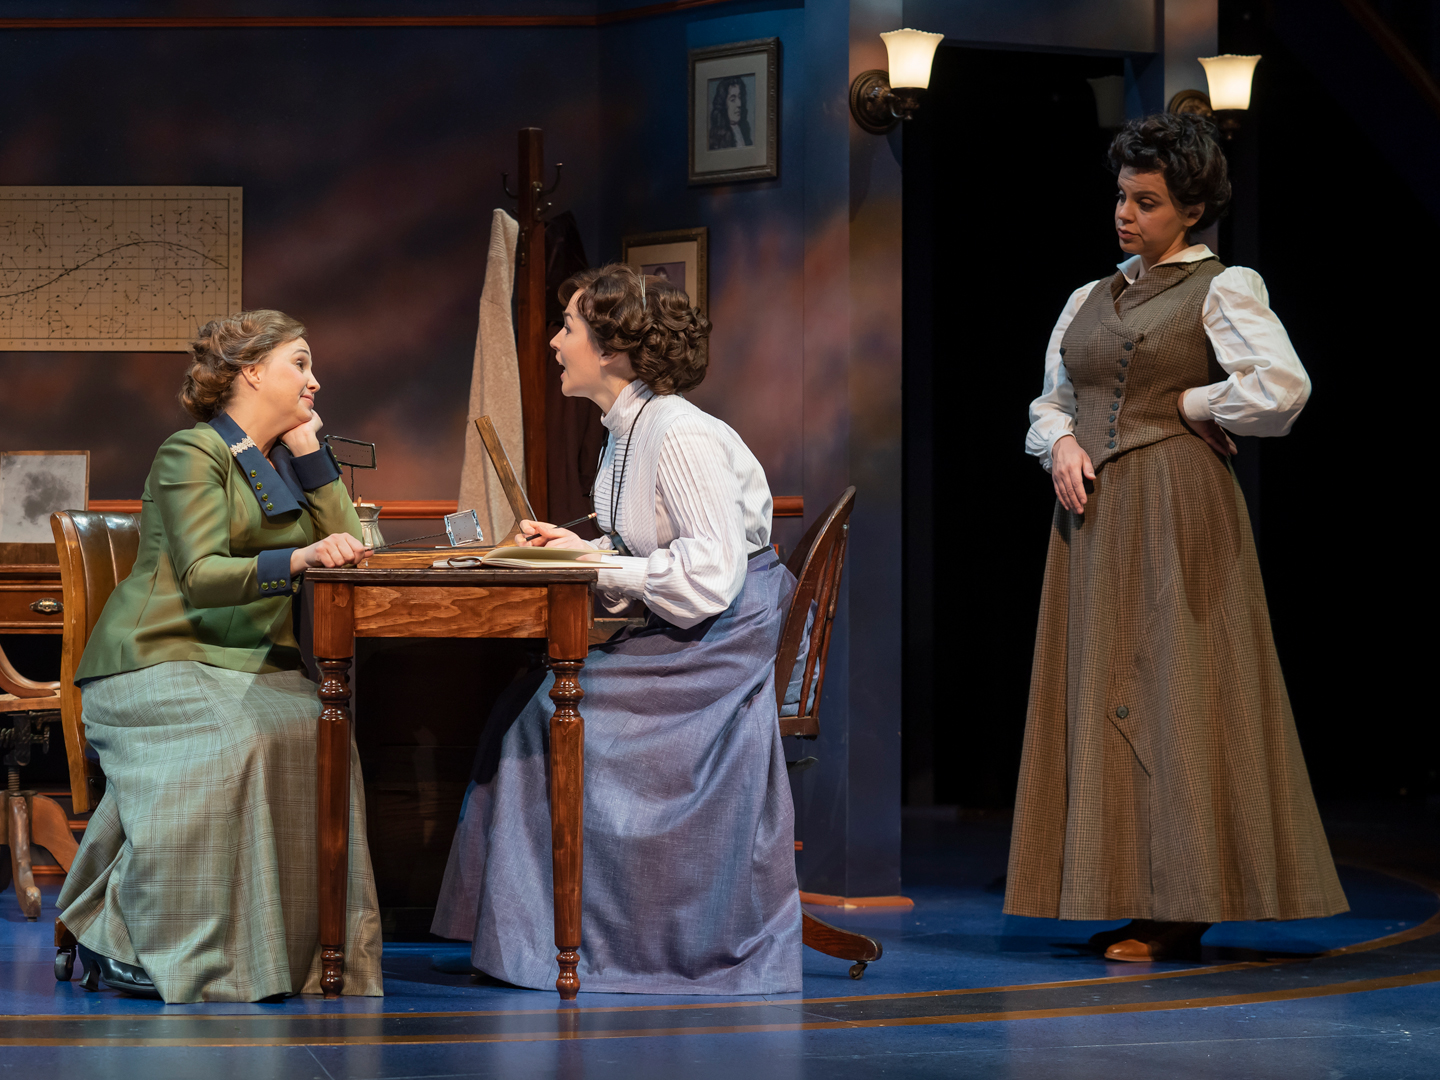 Holly Twyford, Laura C. Harris, and Nora Achrati in Silent Sky at Ford's Theatre